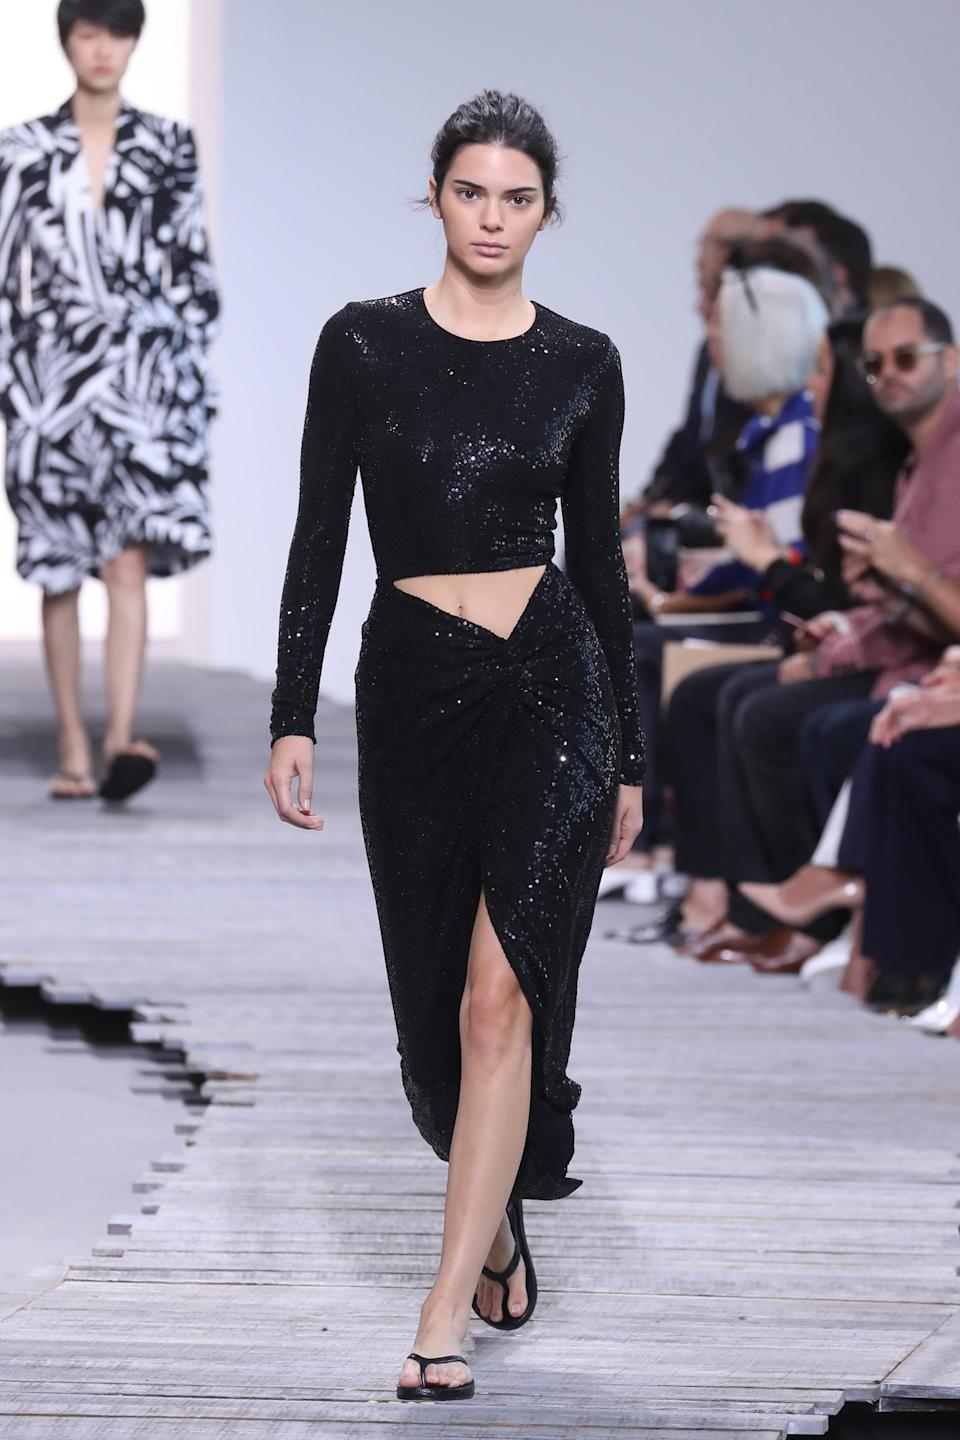 <p>The 22-year-old Kardashian offspring is the highest paid model of 2017, more than doubling her earnings from last year. Scoring herself £16.6 million, she has starred in campaigns for Estee Lauder, La Perla and Fendi and appeared on the catwalks in almost every city.<br><i>[Photo: Getty]</i> </p>